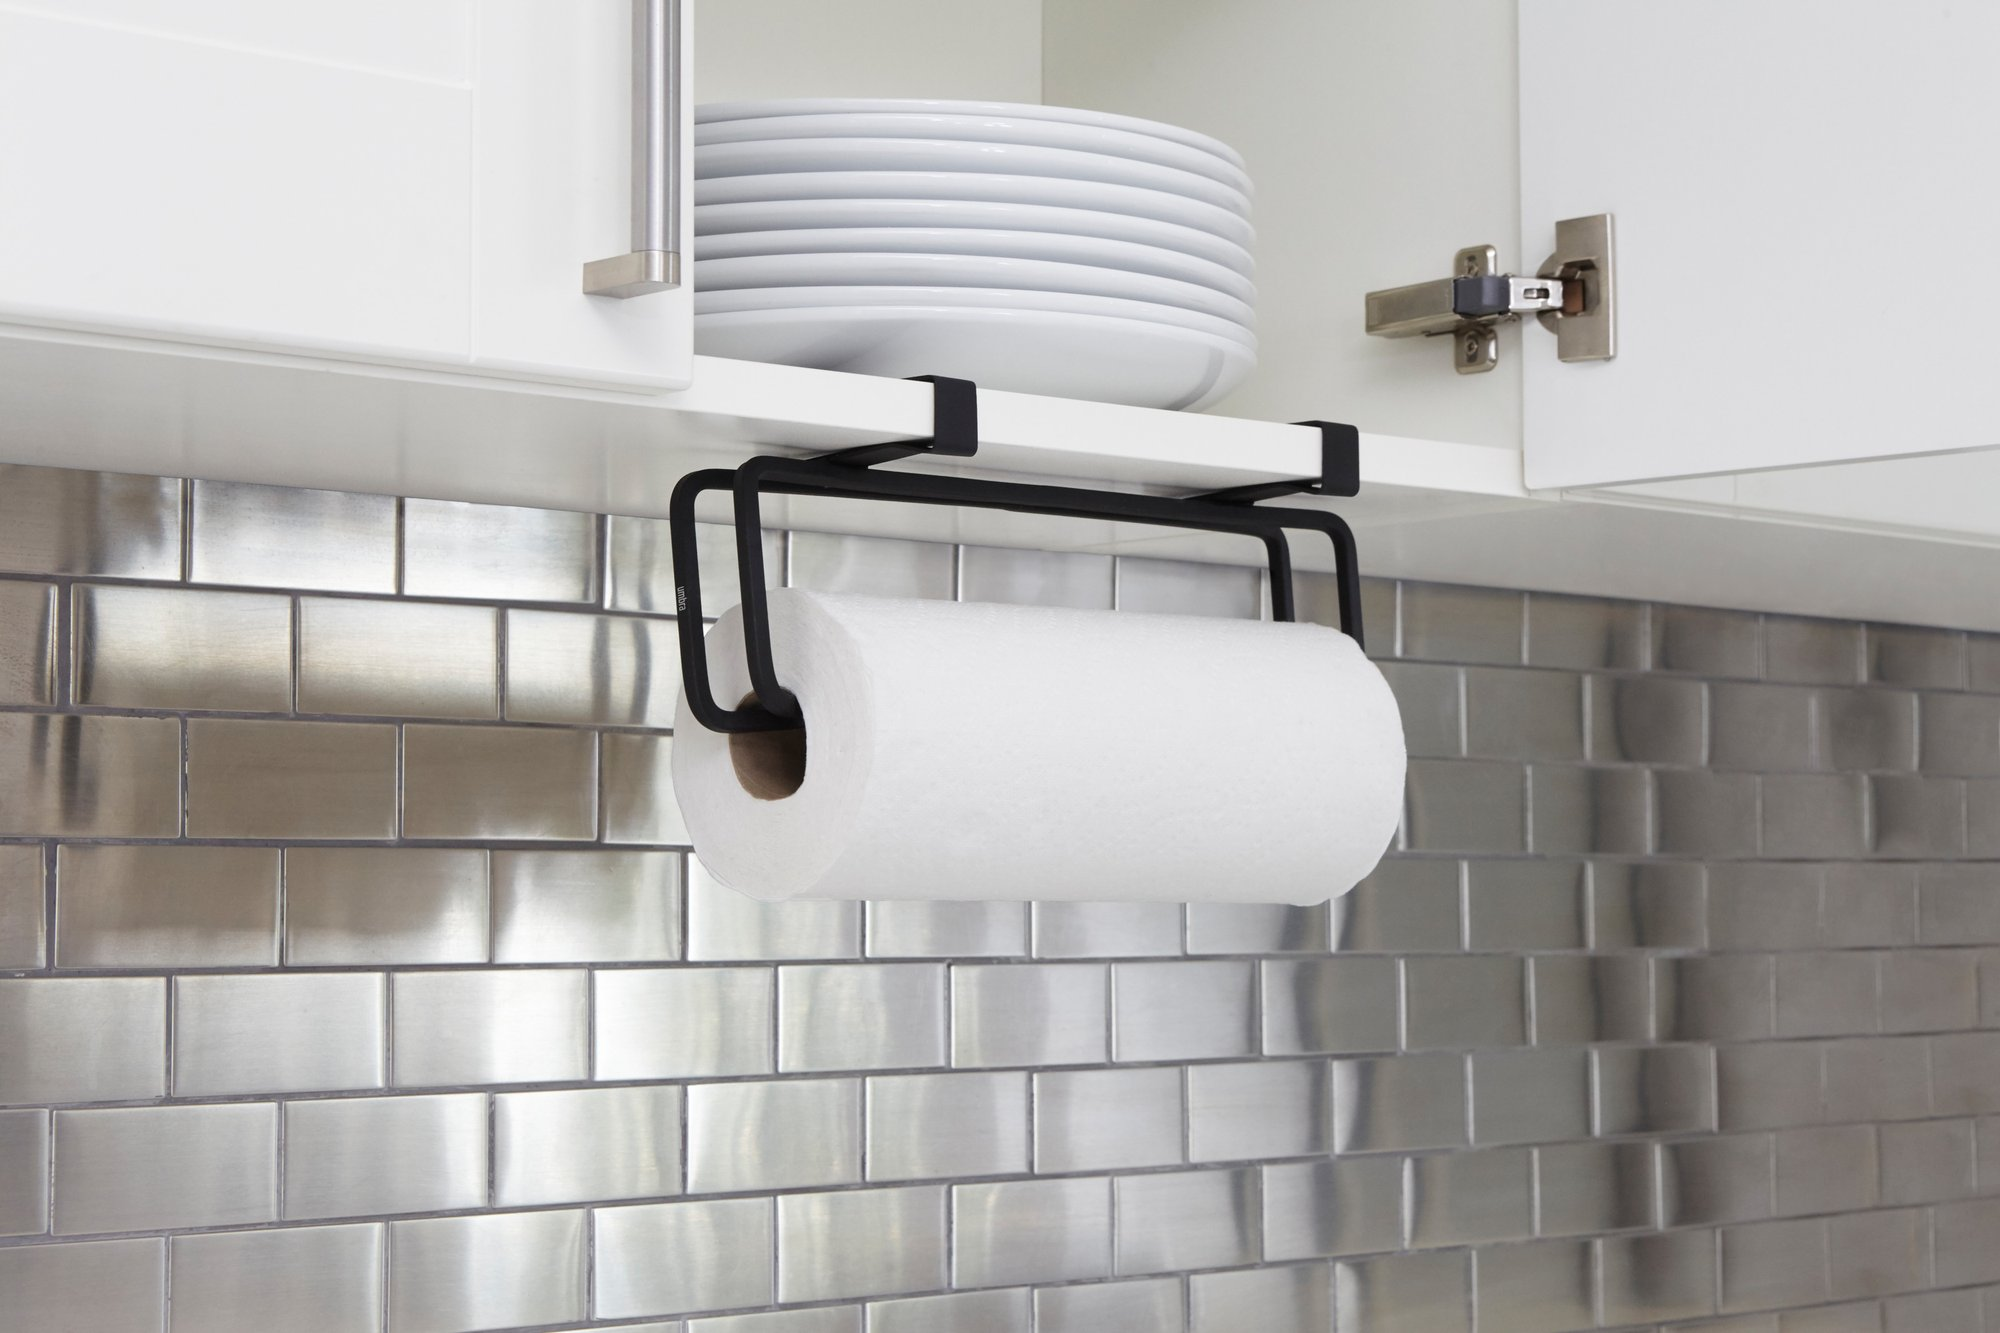 Below Is A Rapid Method To Fix A Trouble With Ideal Paper Towel Owners